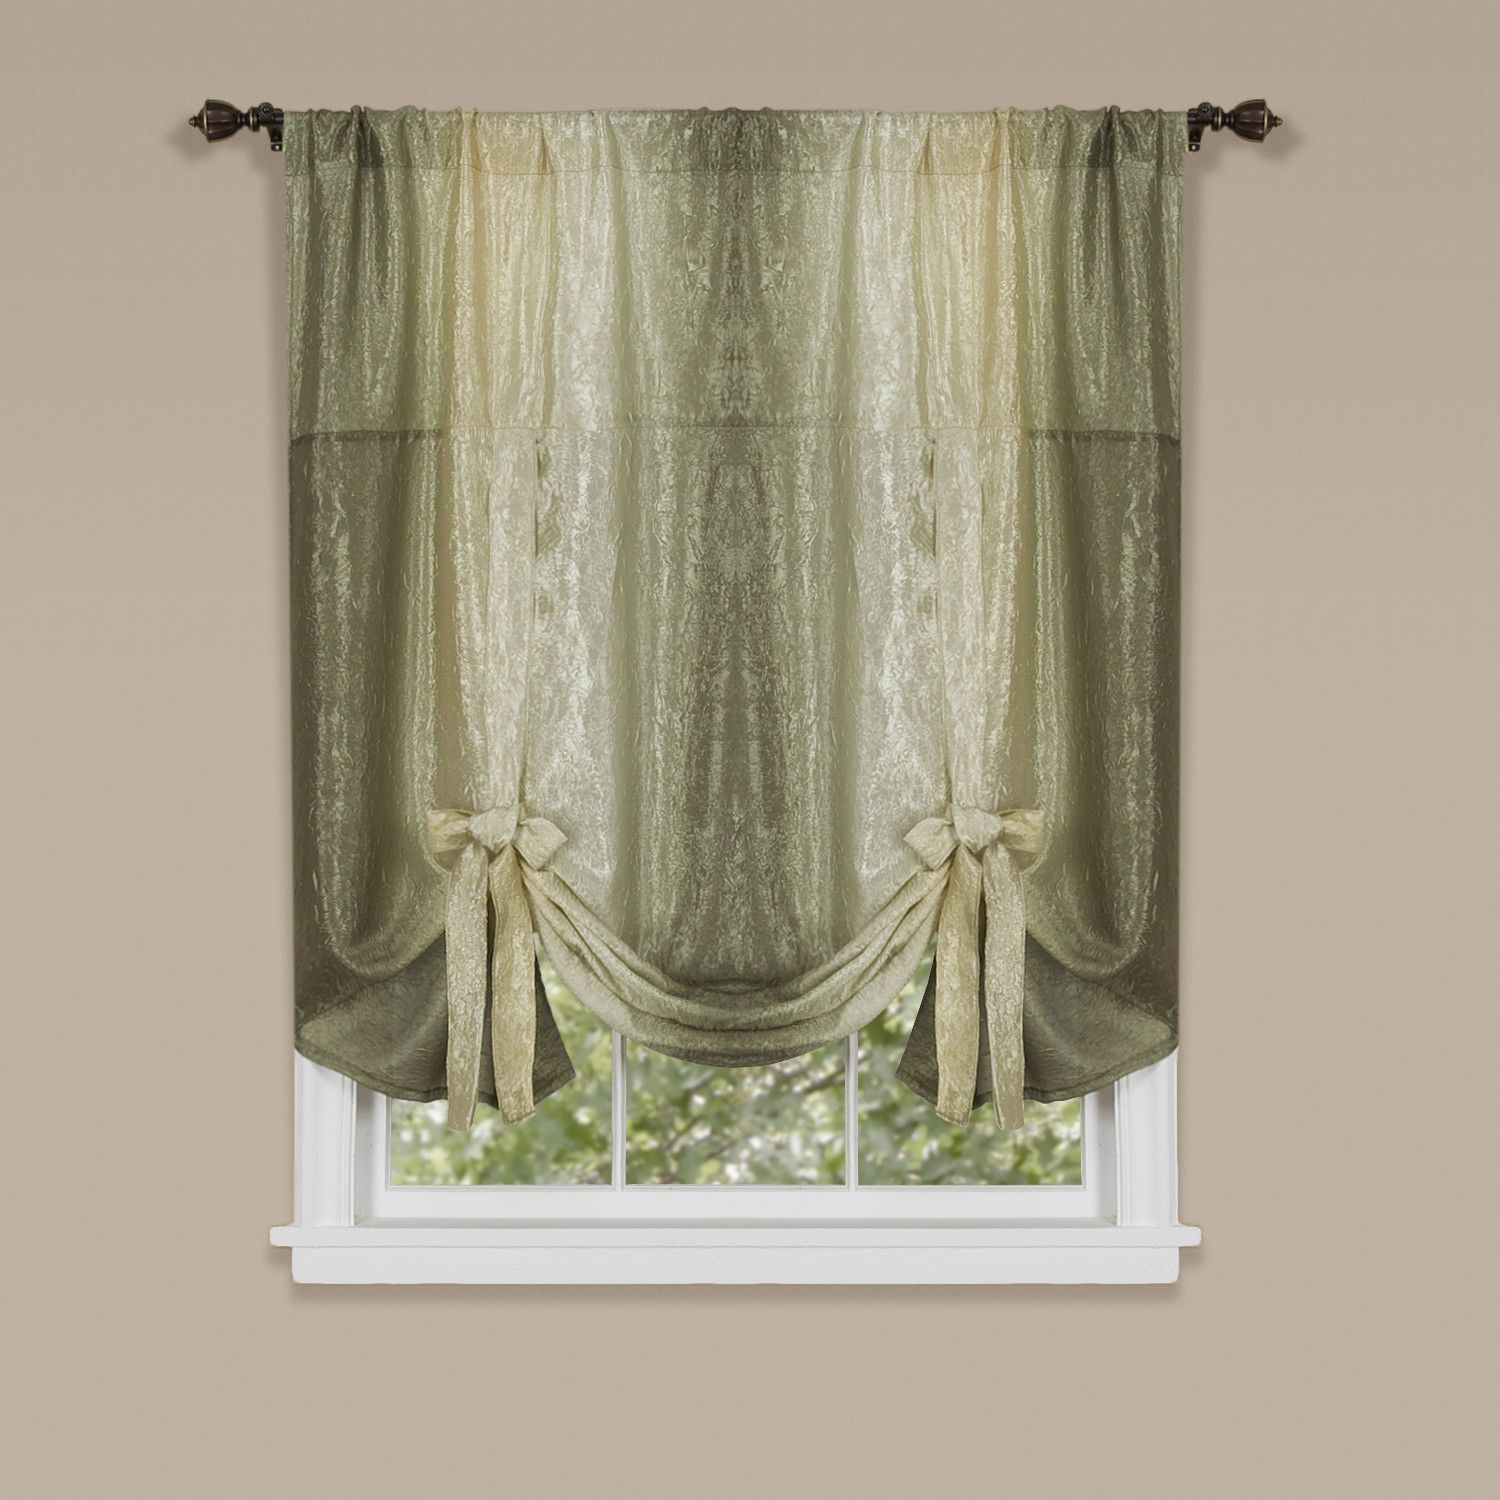 Bed bath and beyond window curtains  velia tie up abstract sheer single curtain panel  curtain valances